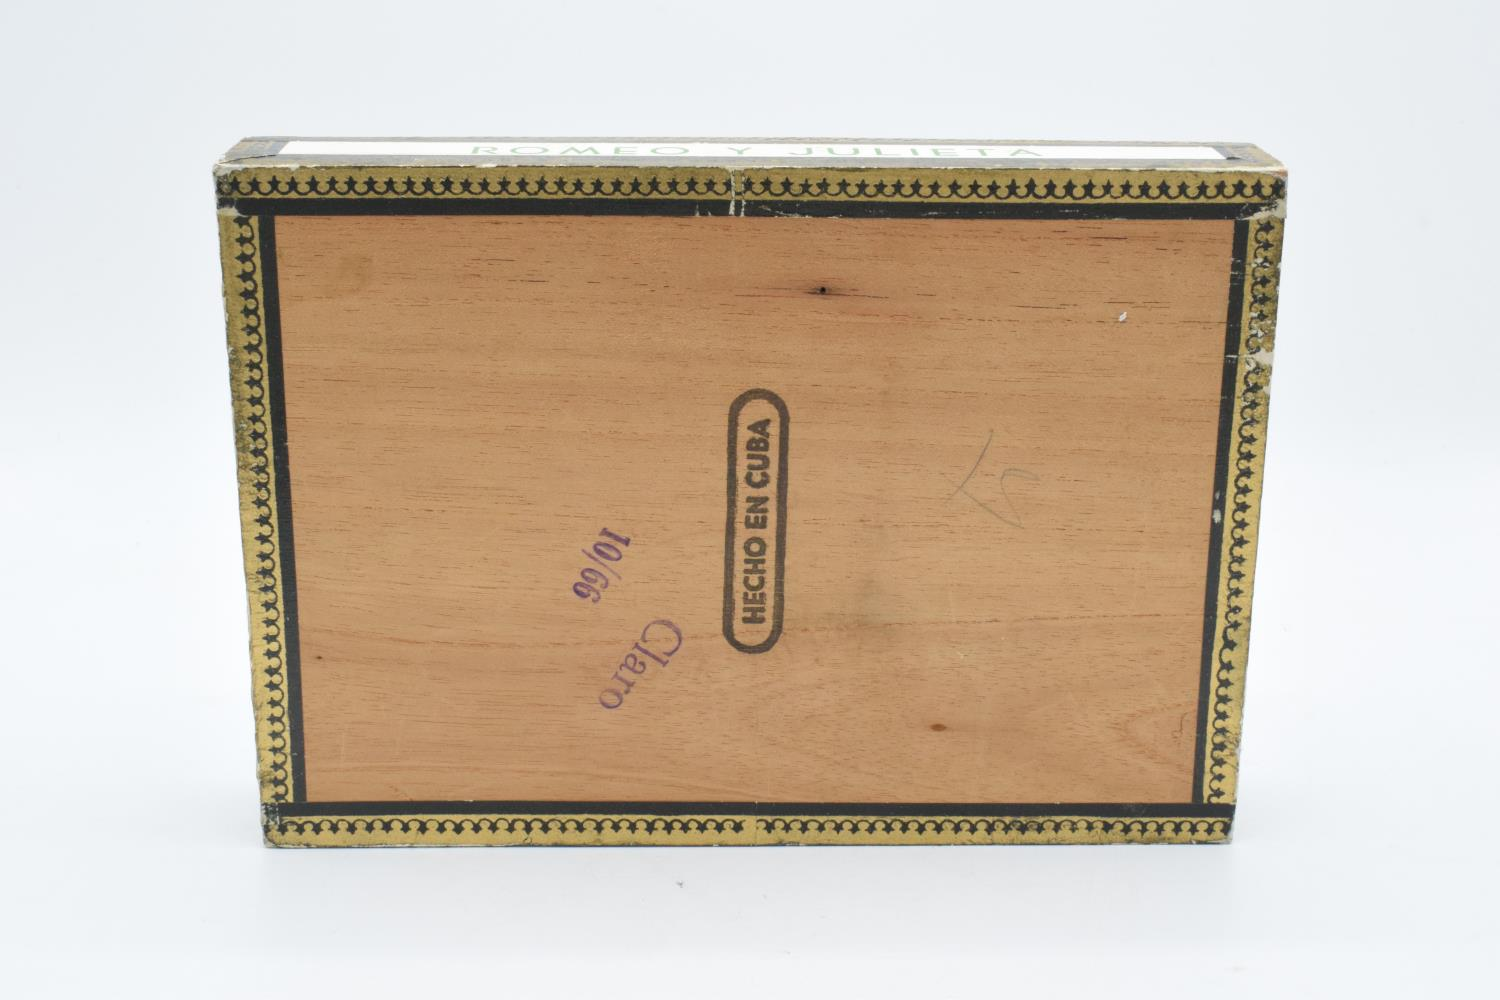 A cased set of 25 Romeo y Julieta Cedros De Luxe No.1 cigars made in Habana, Cuba. Appear to be in - Image 11 of 11